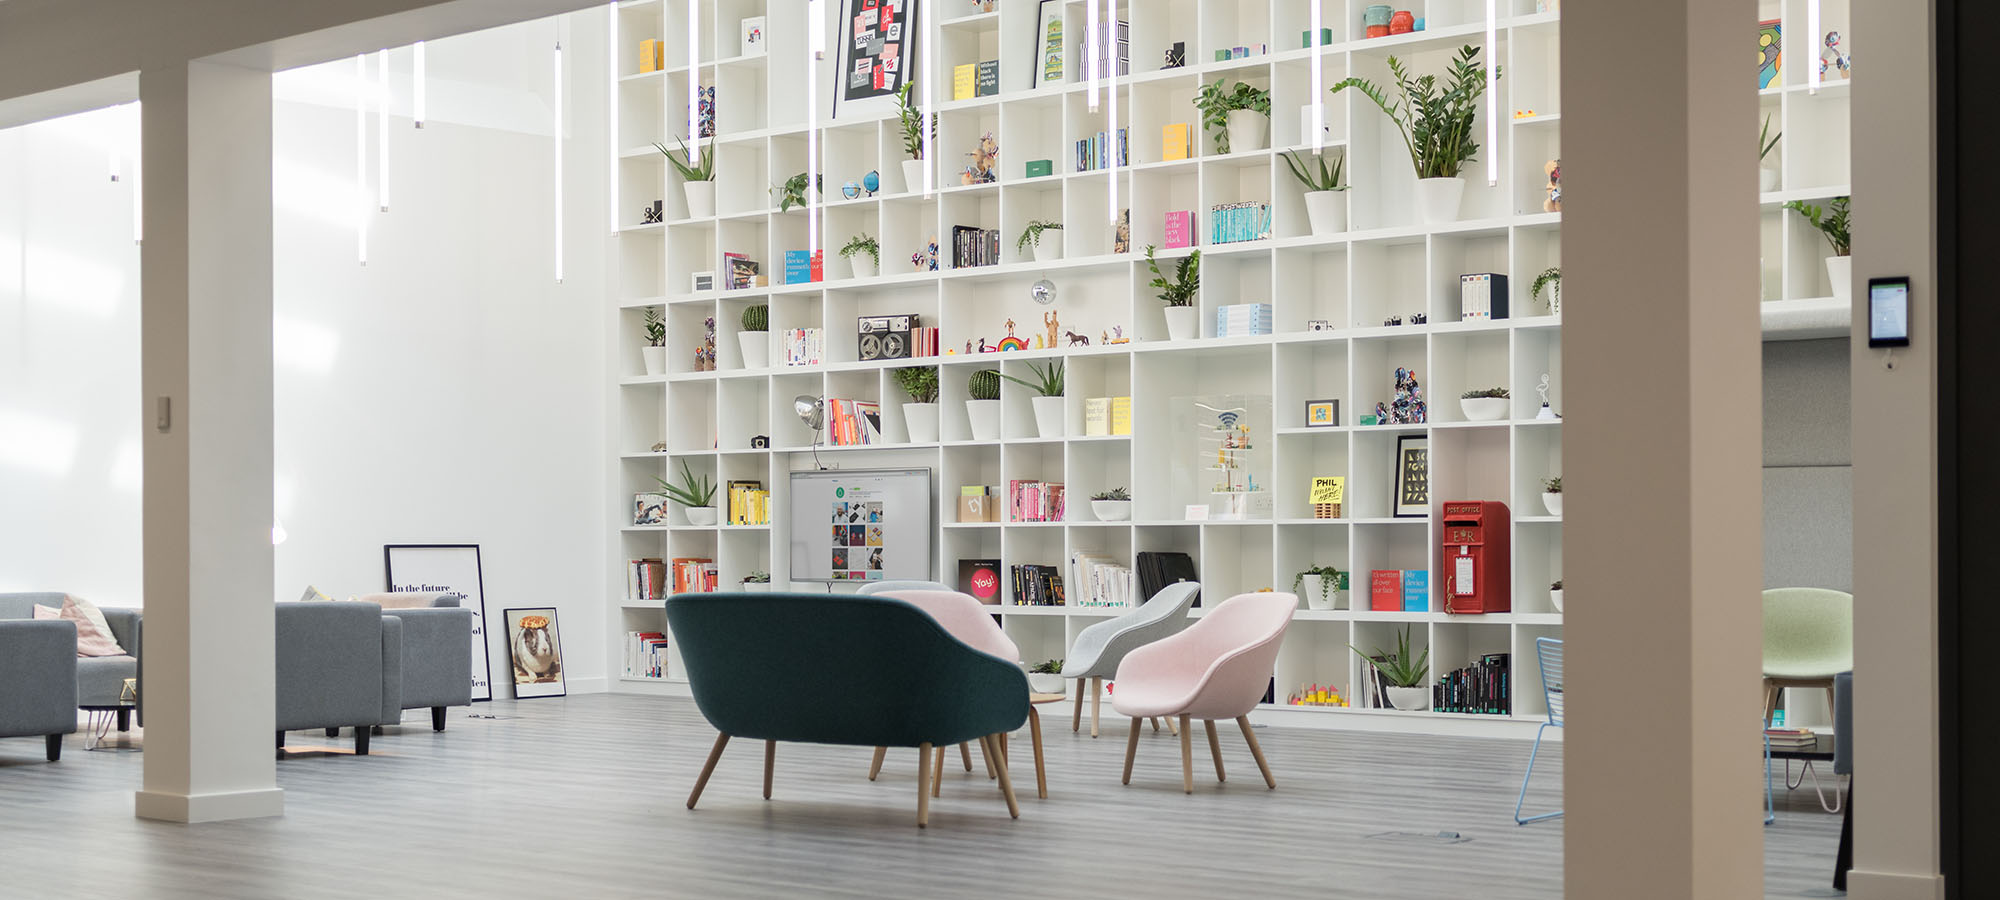 moo london office design peldon rose